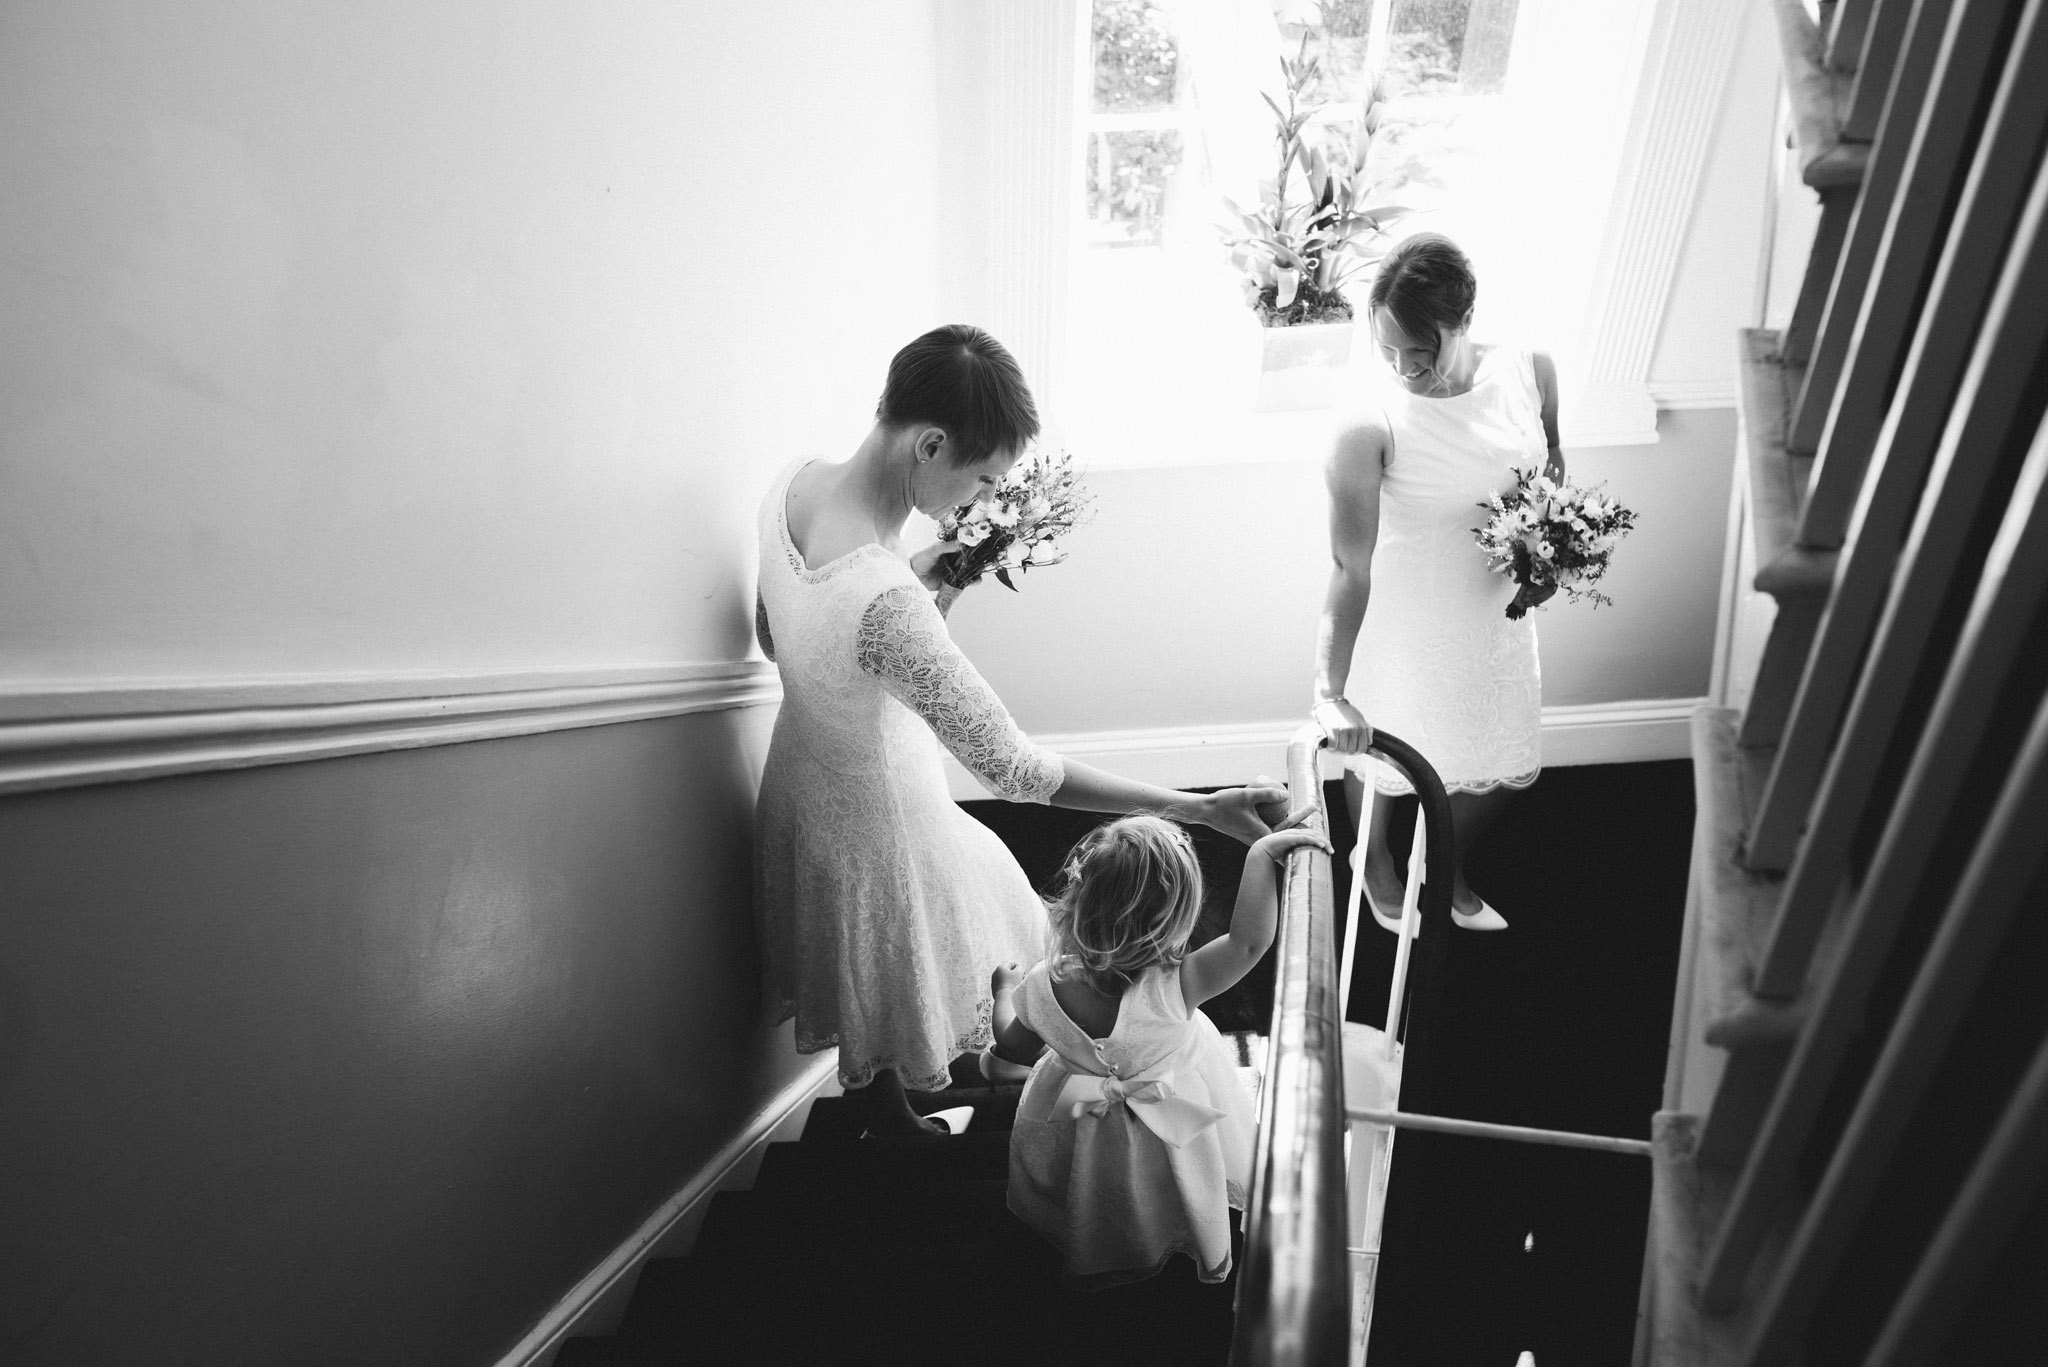 scott-stockwell-photography-wedding-photographer-the-square-club-bristol078.jpg